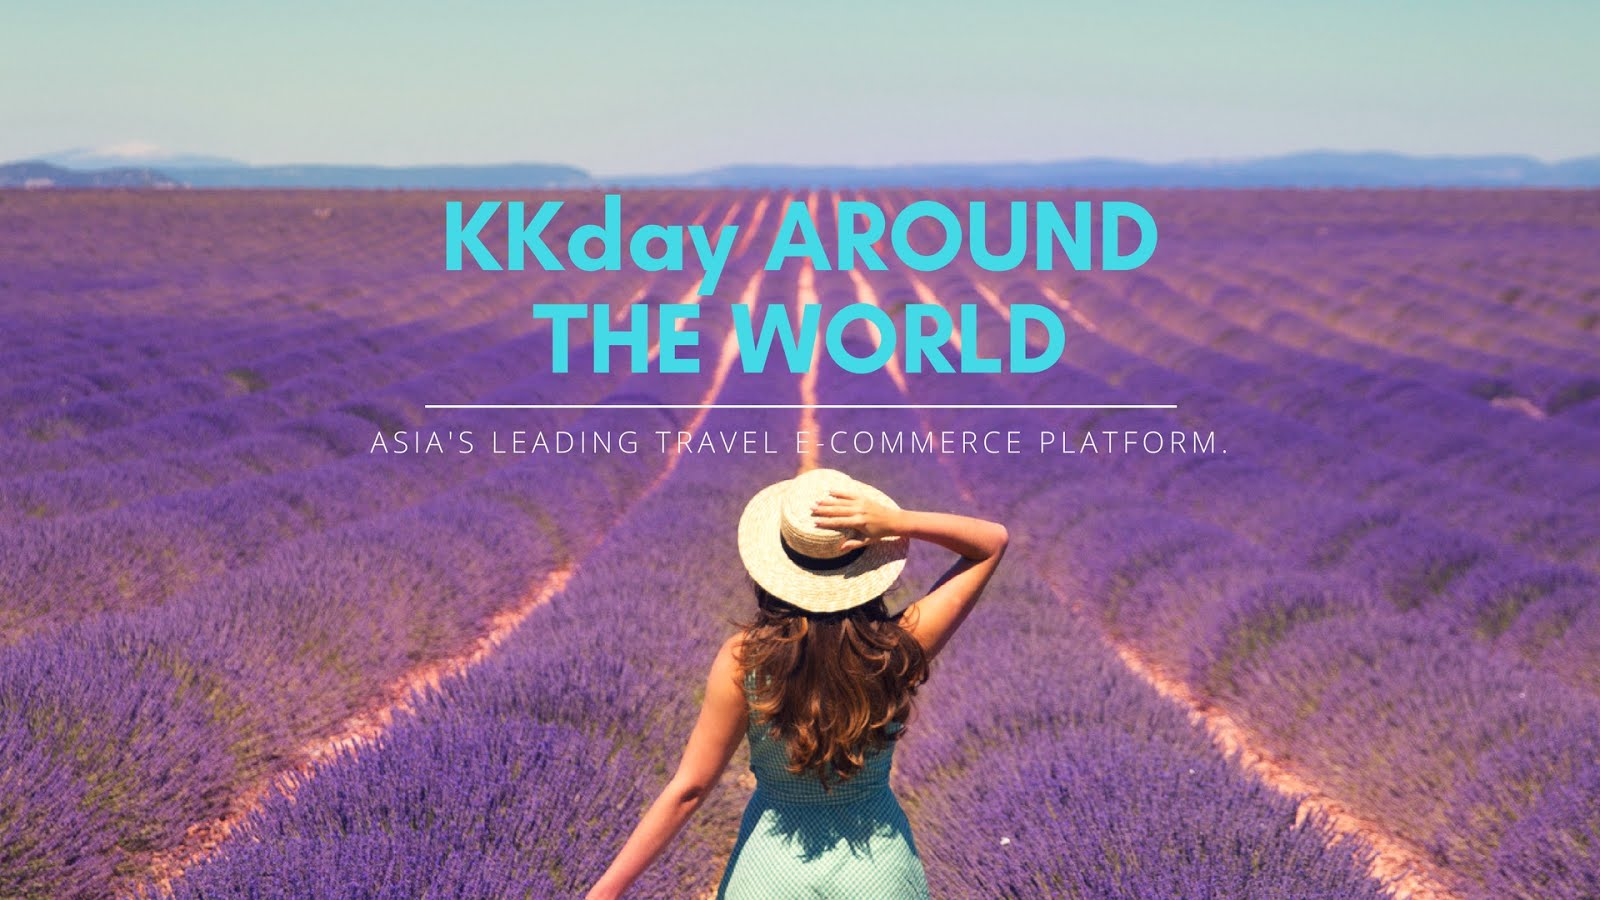 KKday Around The World